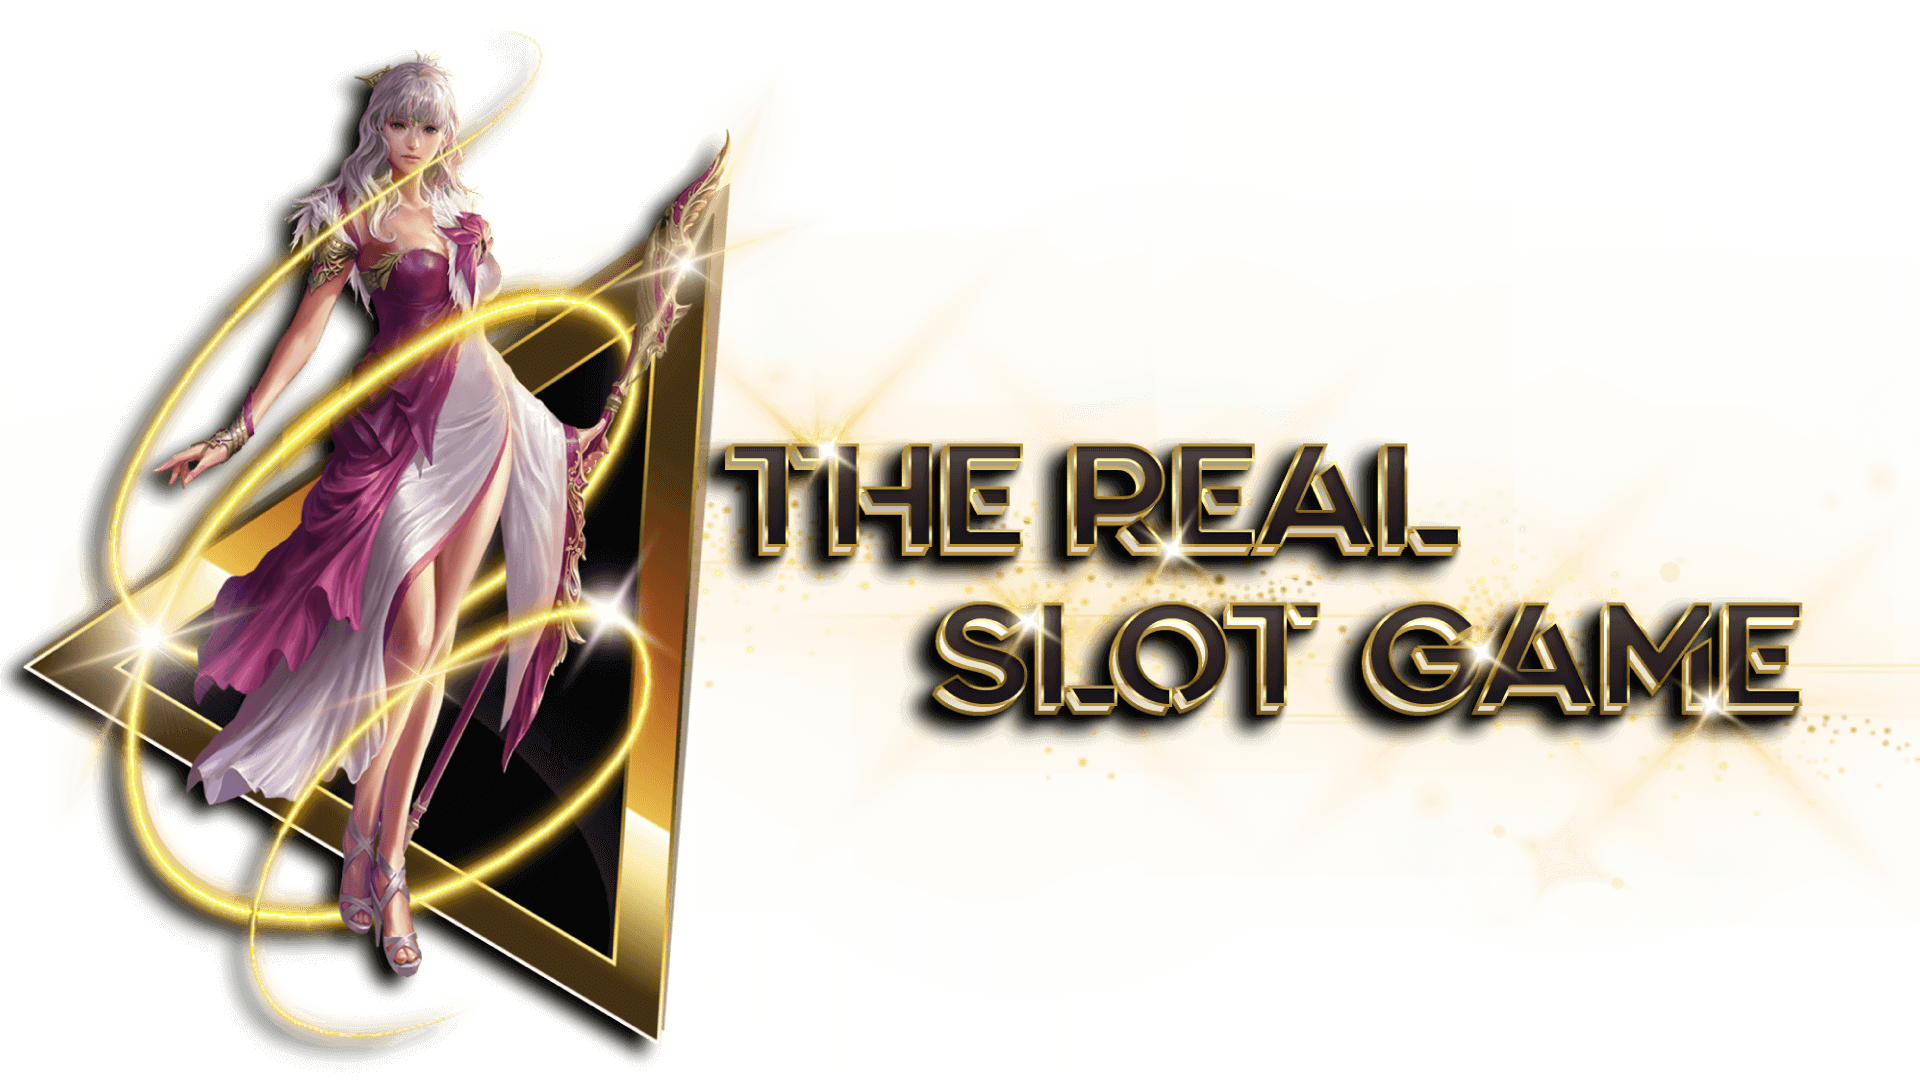 The Real Slot Game